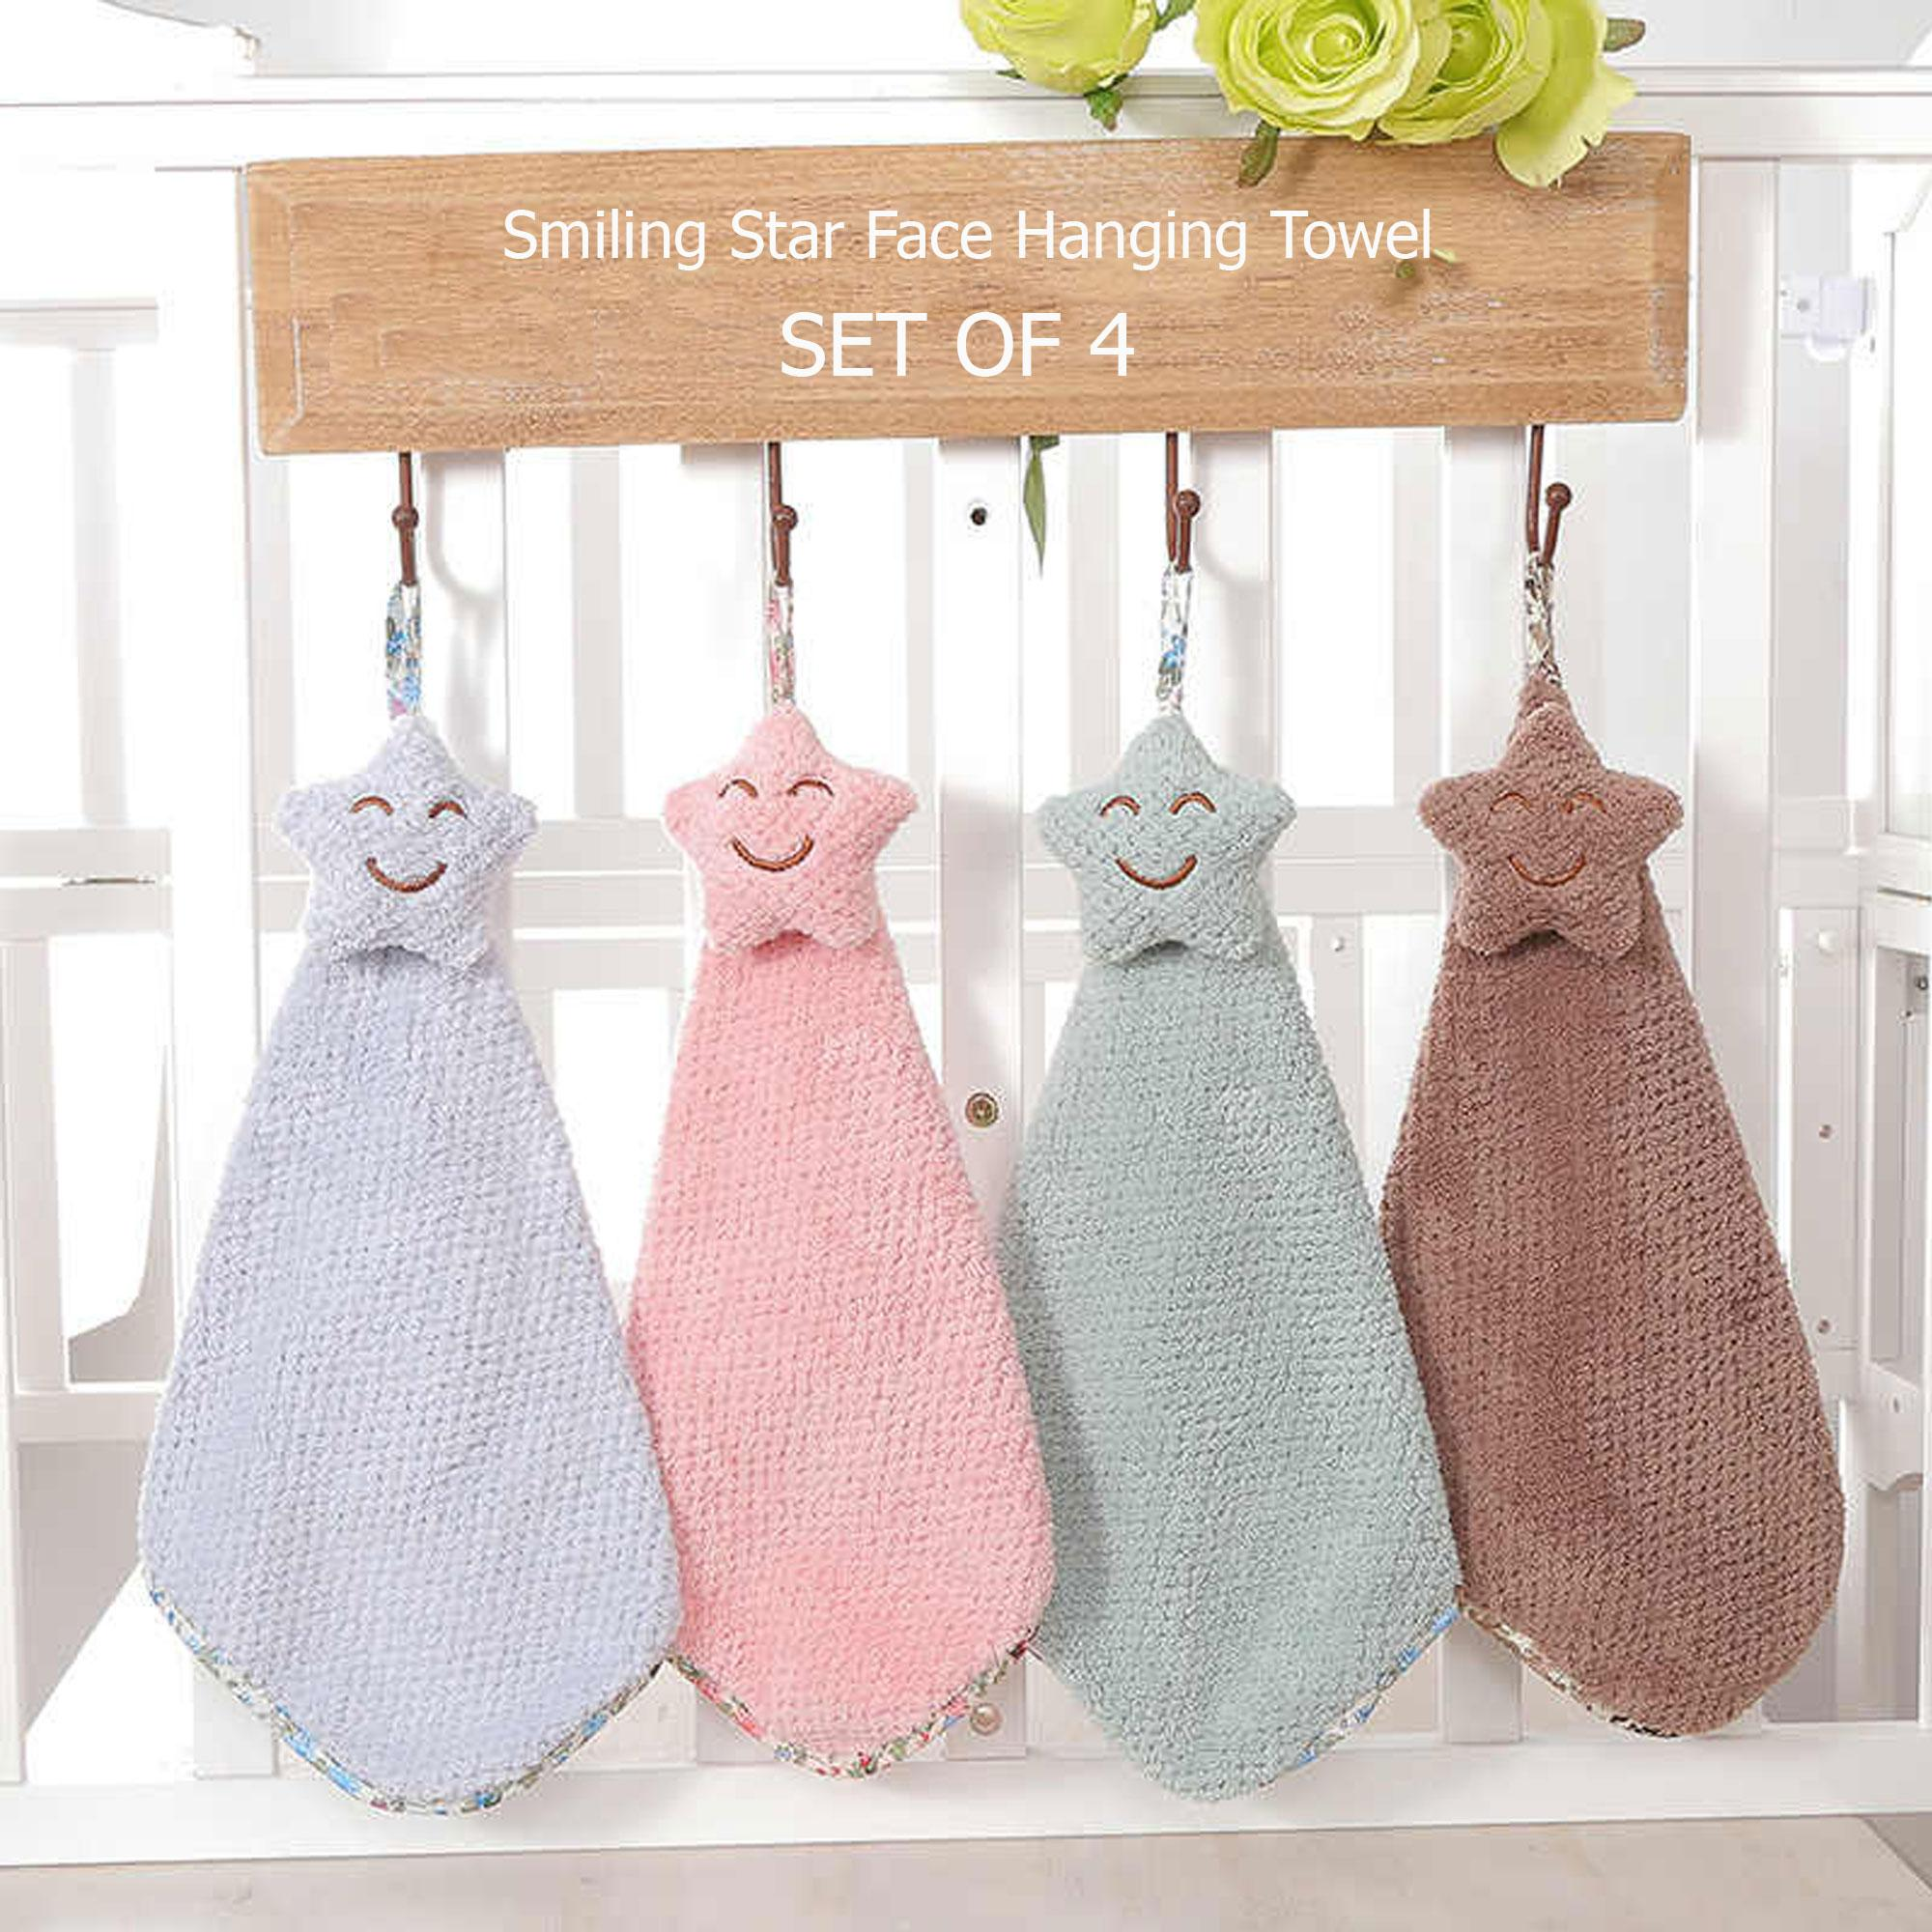 Smiling Star Face Hanging Quick Drying Soft Wipe Hand Towel Set Of 4 Color May Vary Hanabishi Electric Fan Wiring Diagram 220v